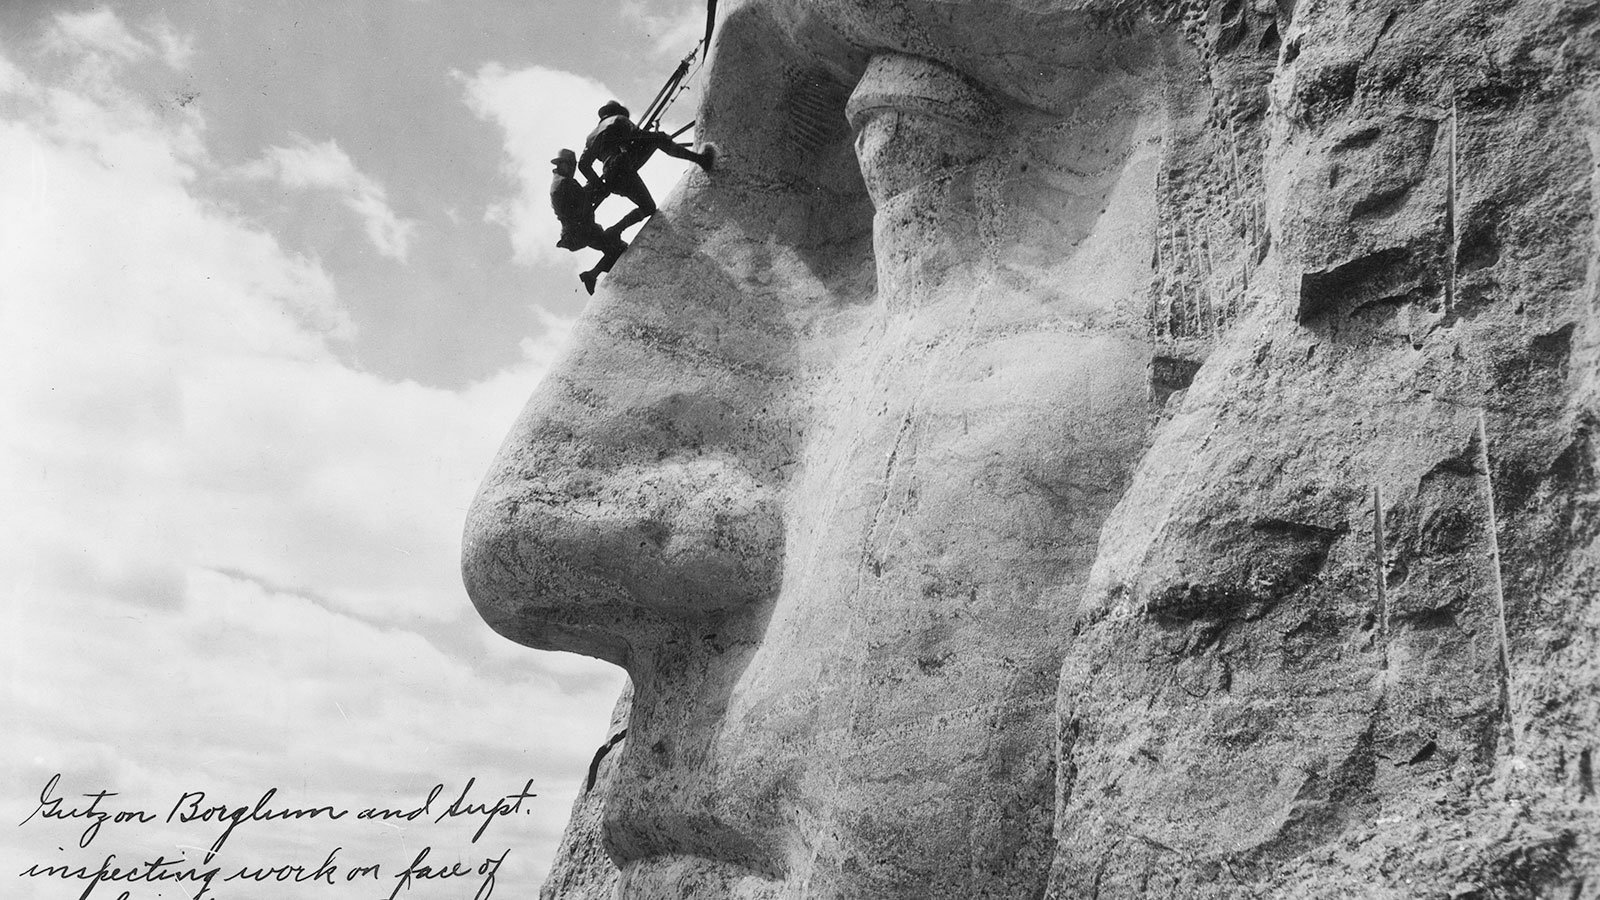 Gutzon Borglum and a superintendent inspecting work on the face of George Washington on Mount Rushmore